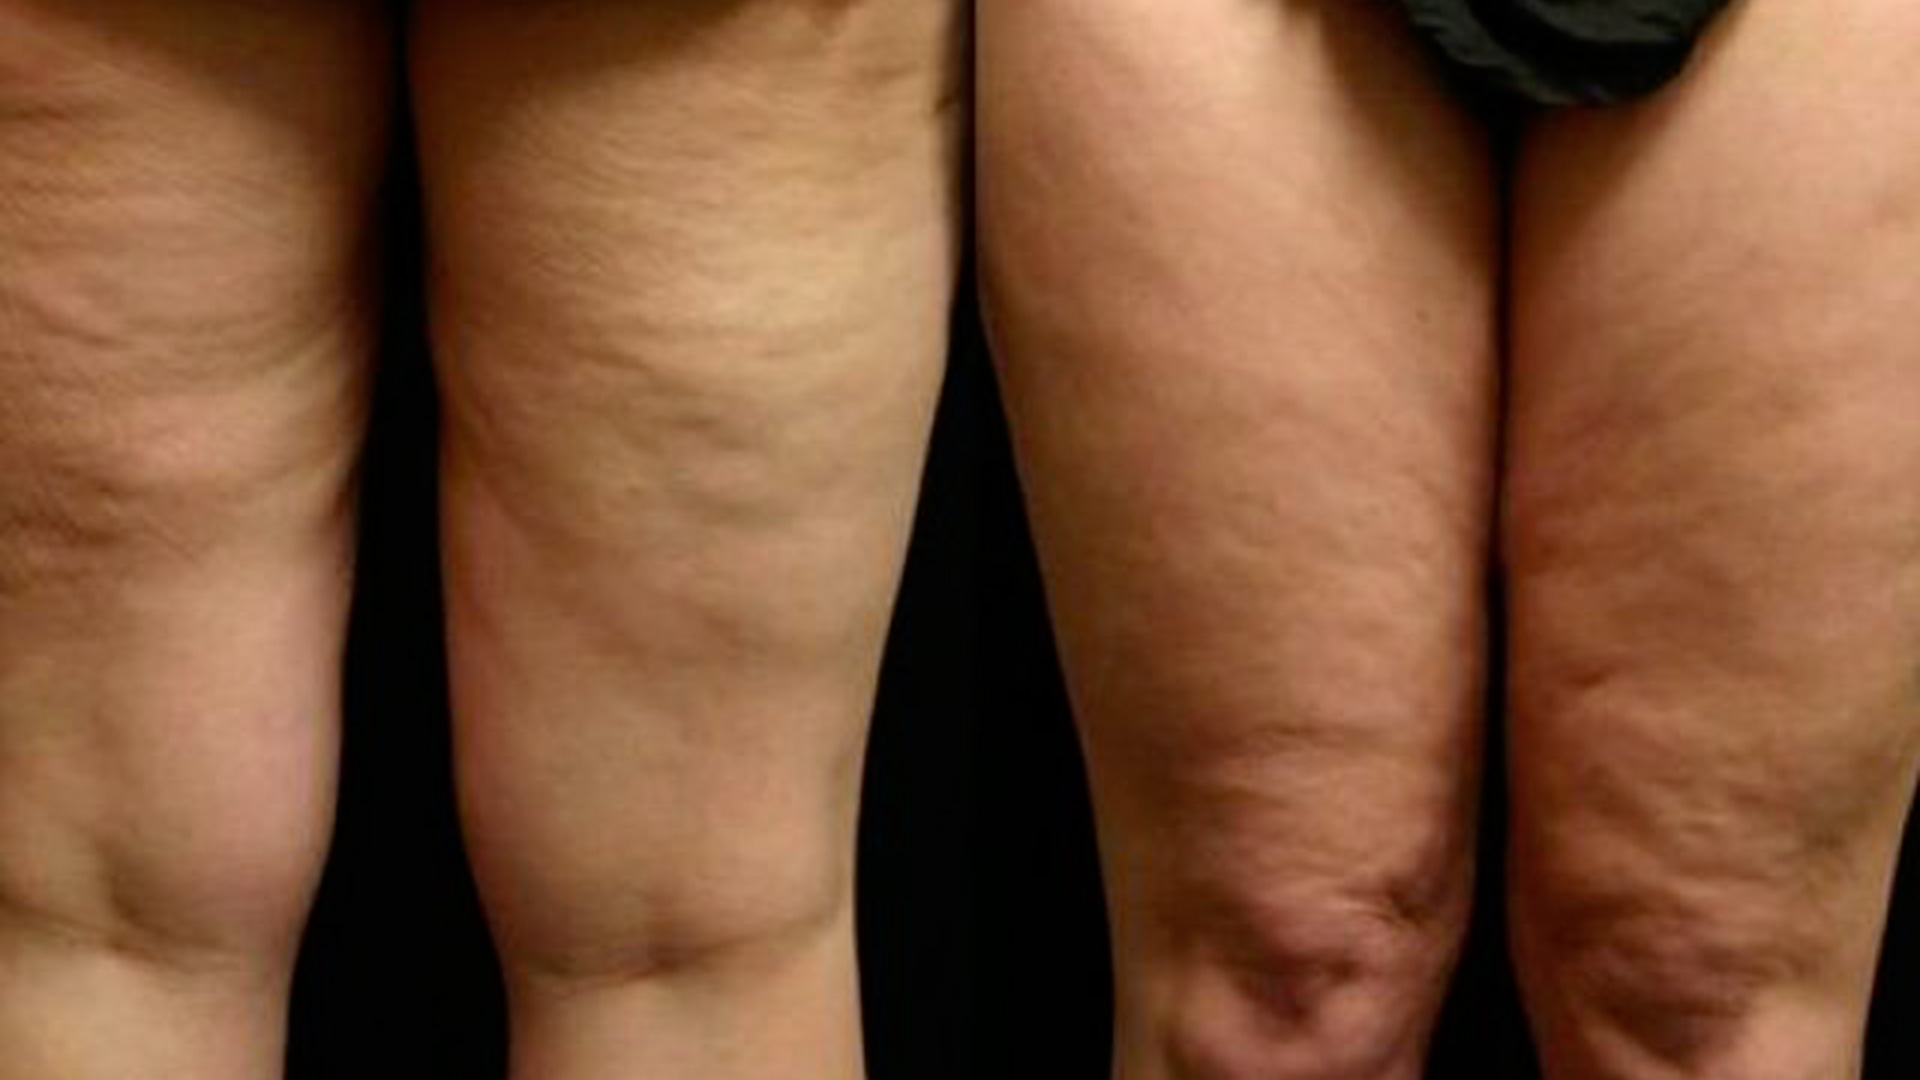 La cellulite fibreuse